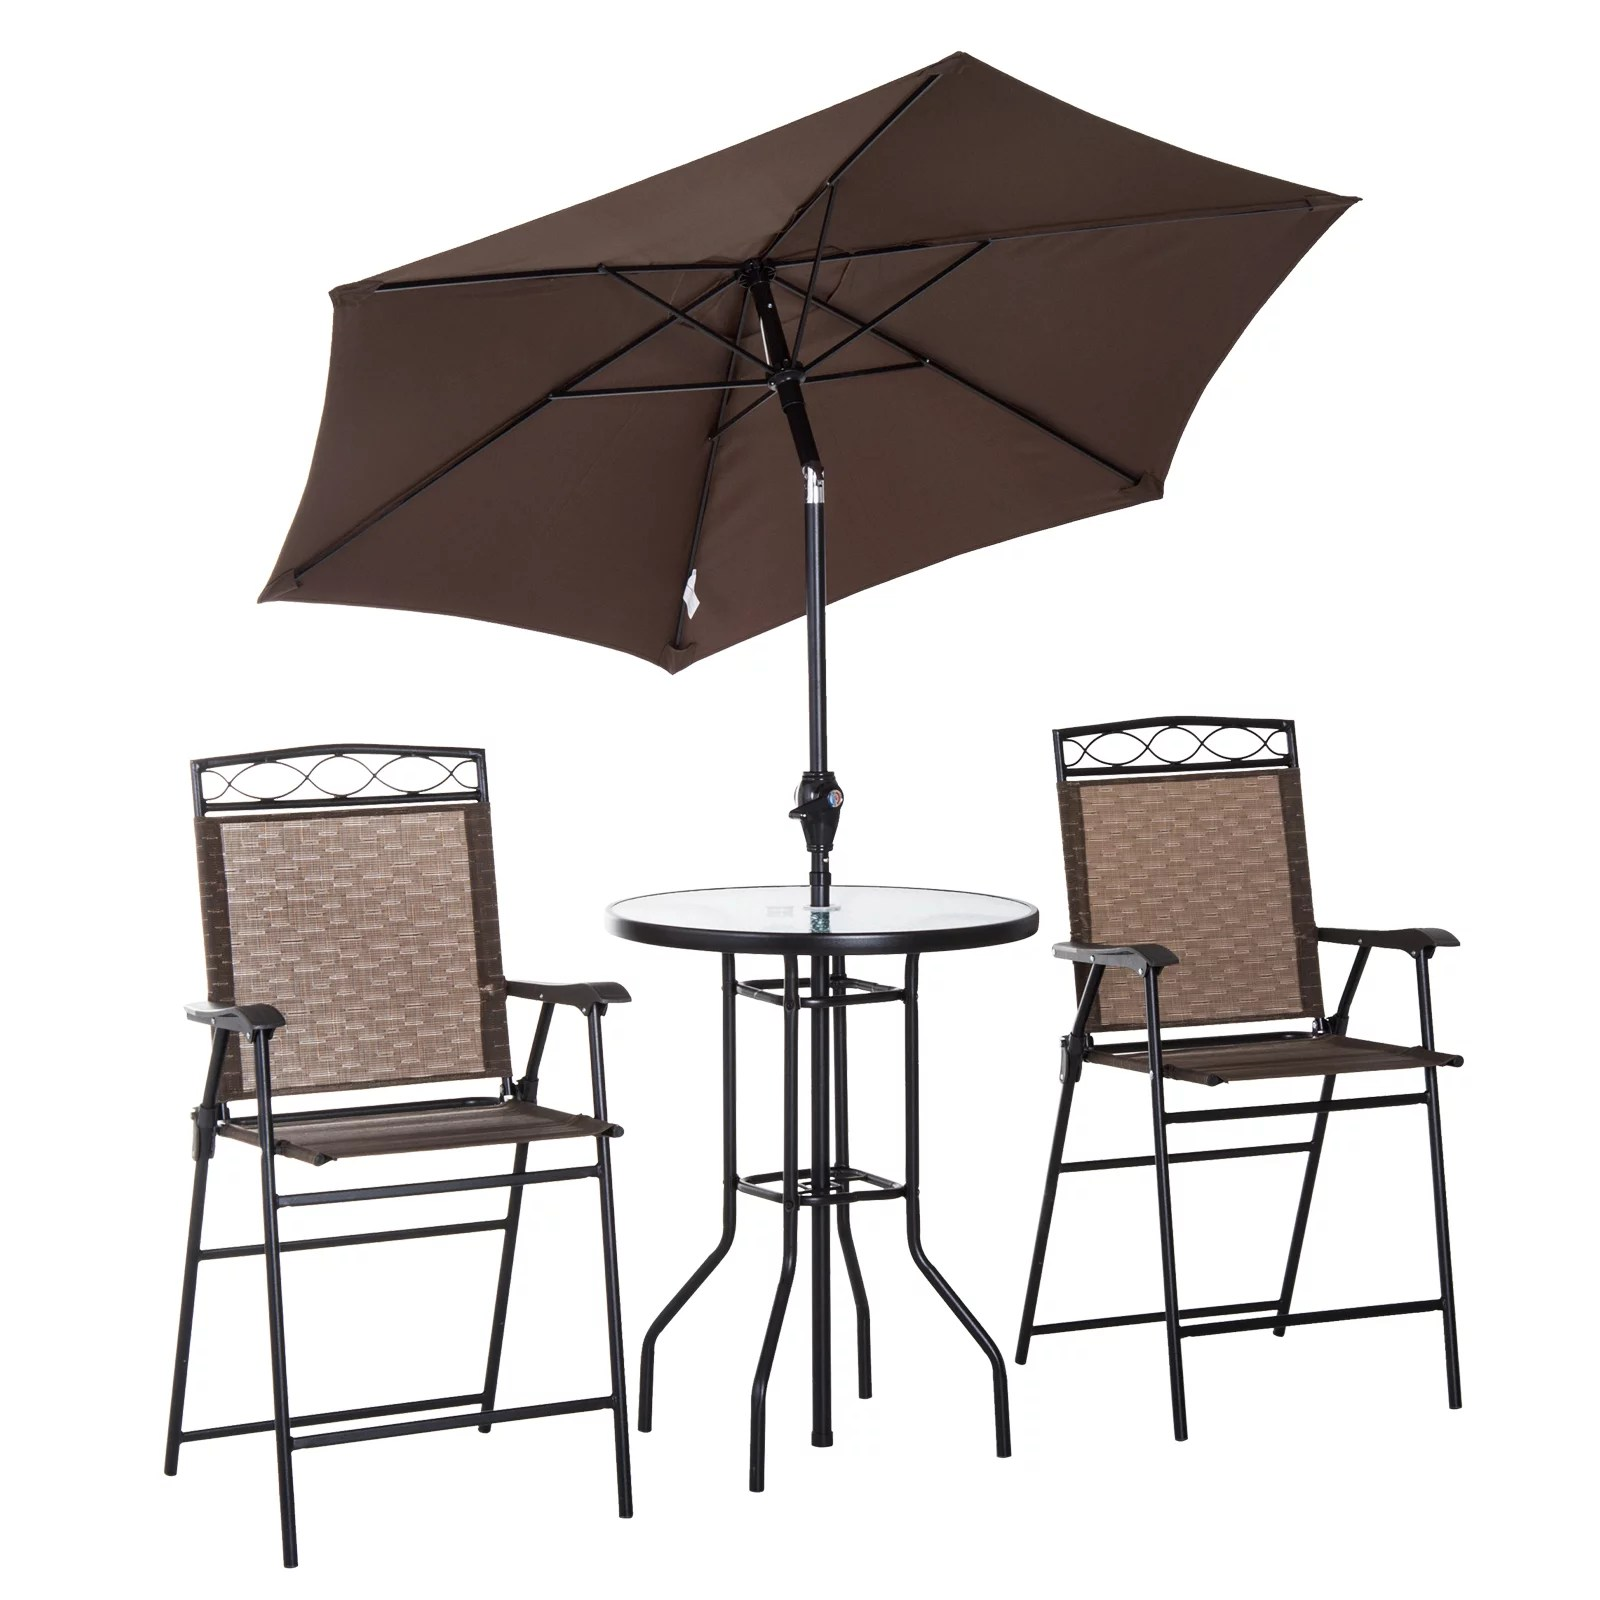 outsunny 4 piece folding outdoor patio pub dining table and chairs set with 6 adjustable tilt umbrella